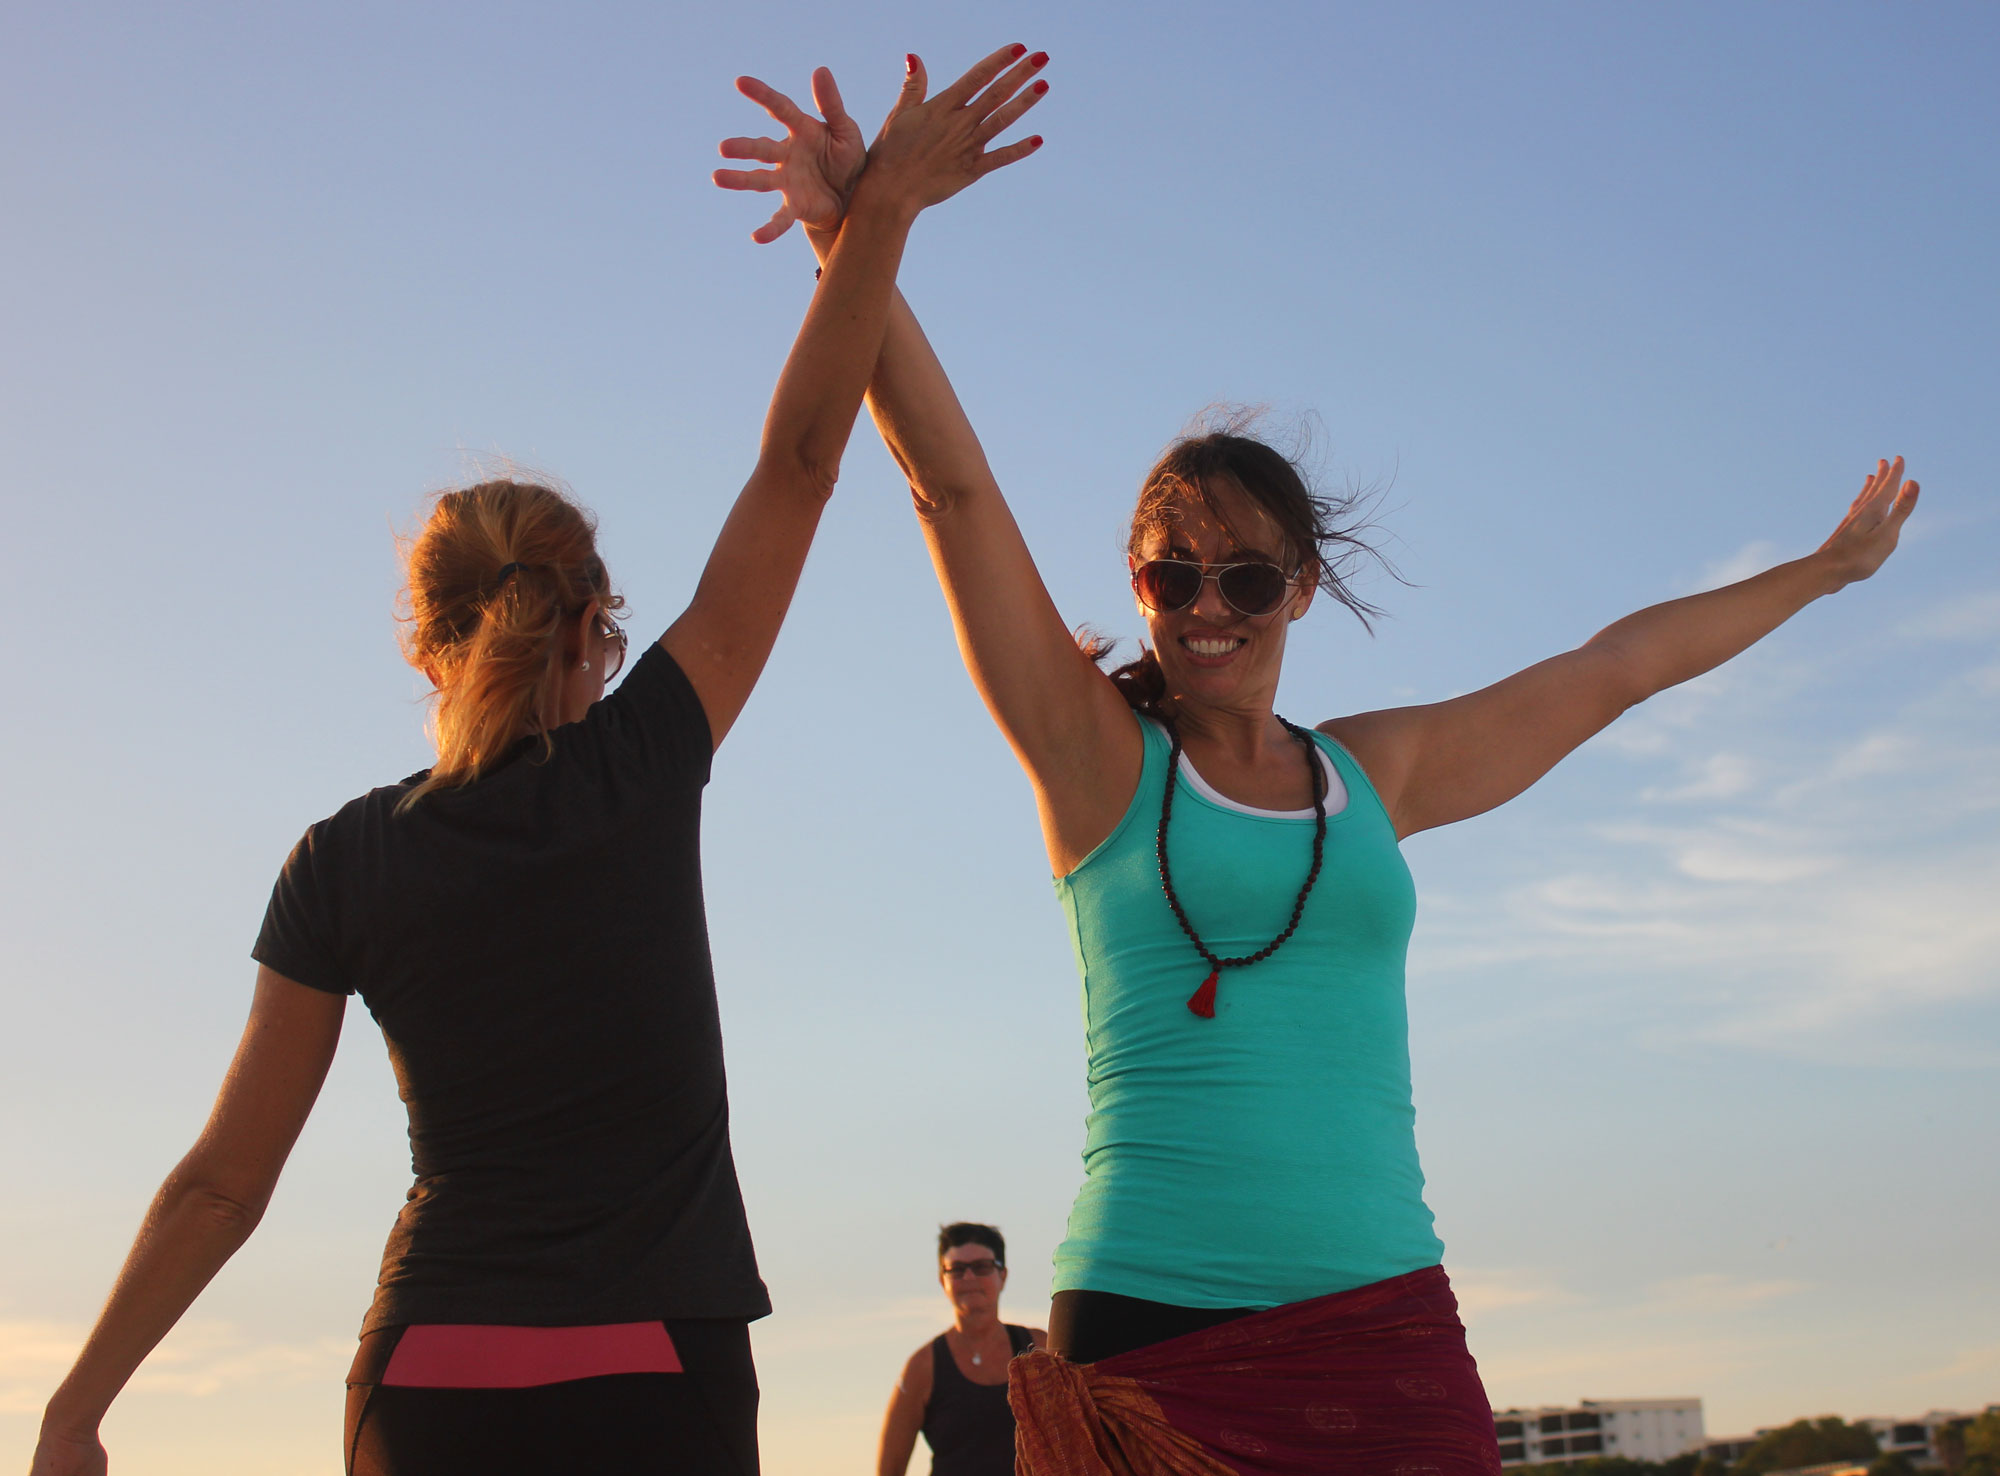 Kai is excellent for demonstrations, specialty groups, or corporate classes to increase energy, creativity and focus!